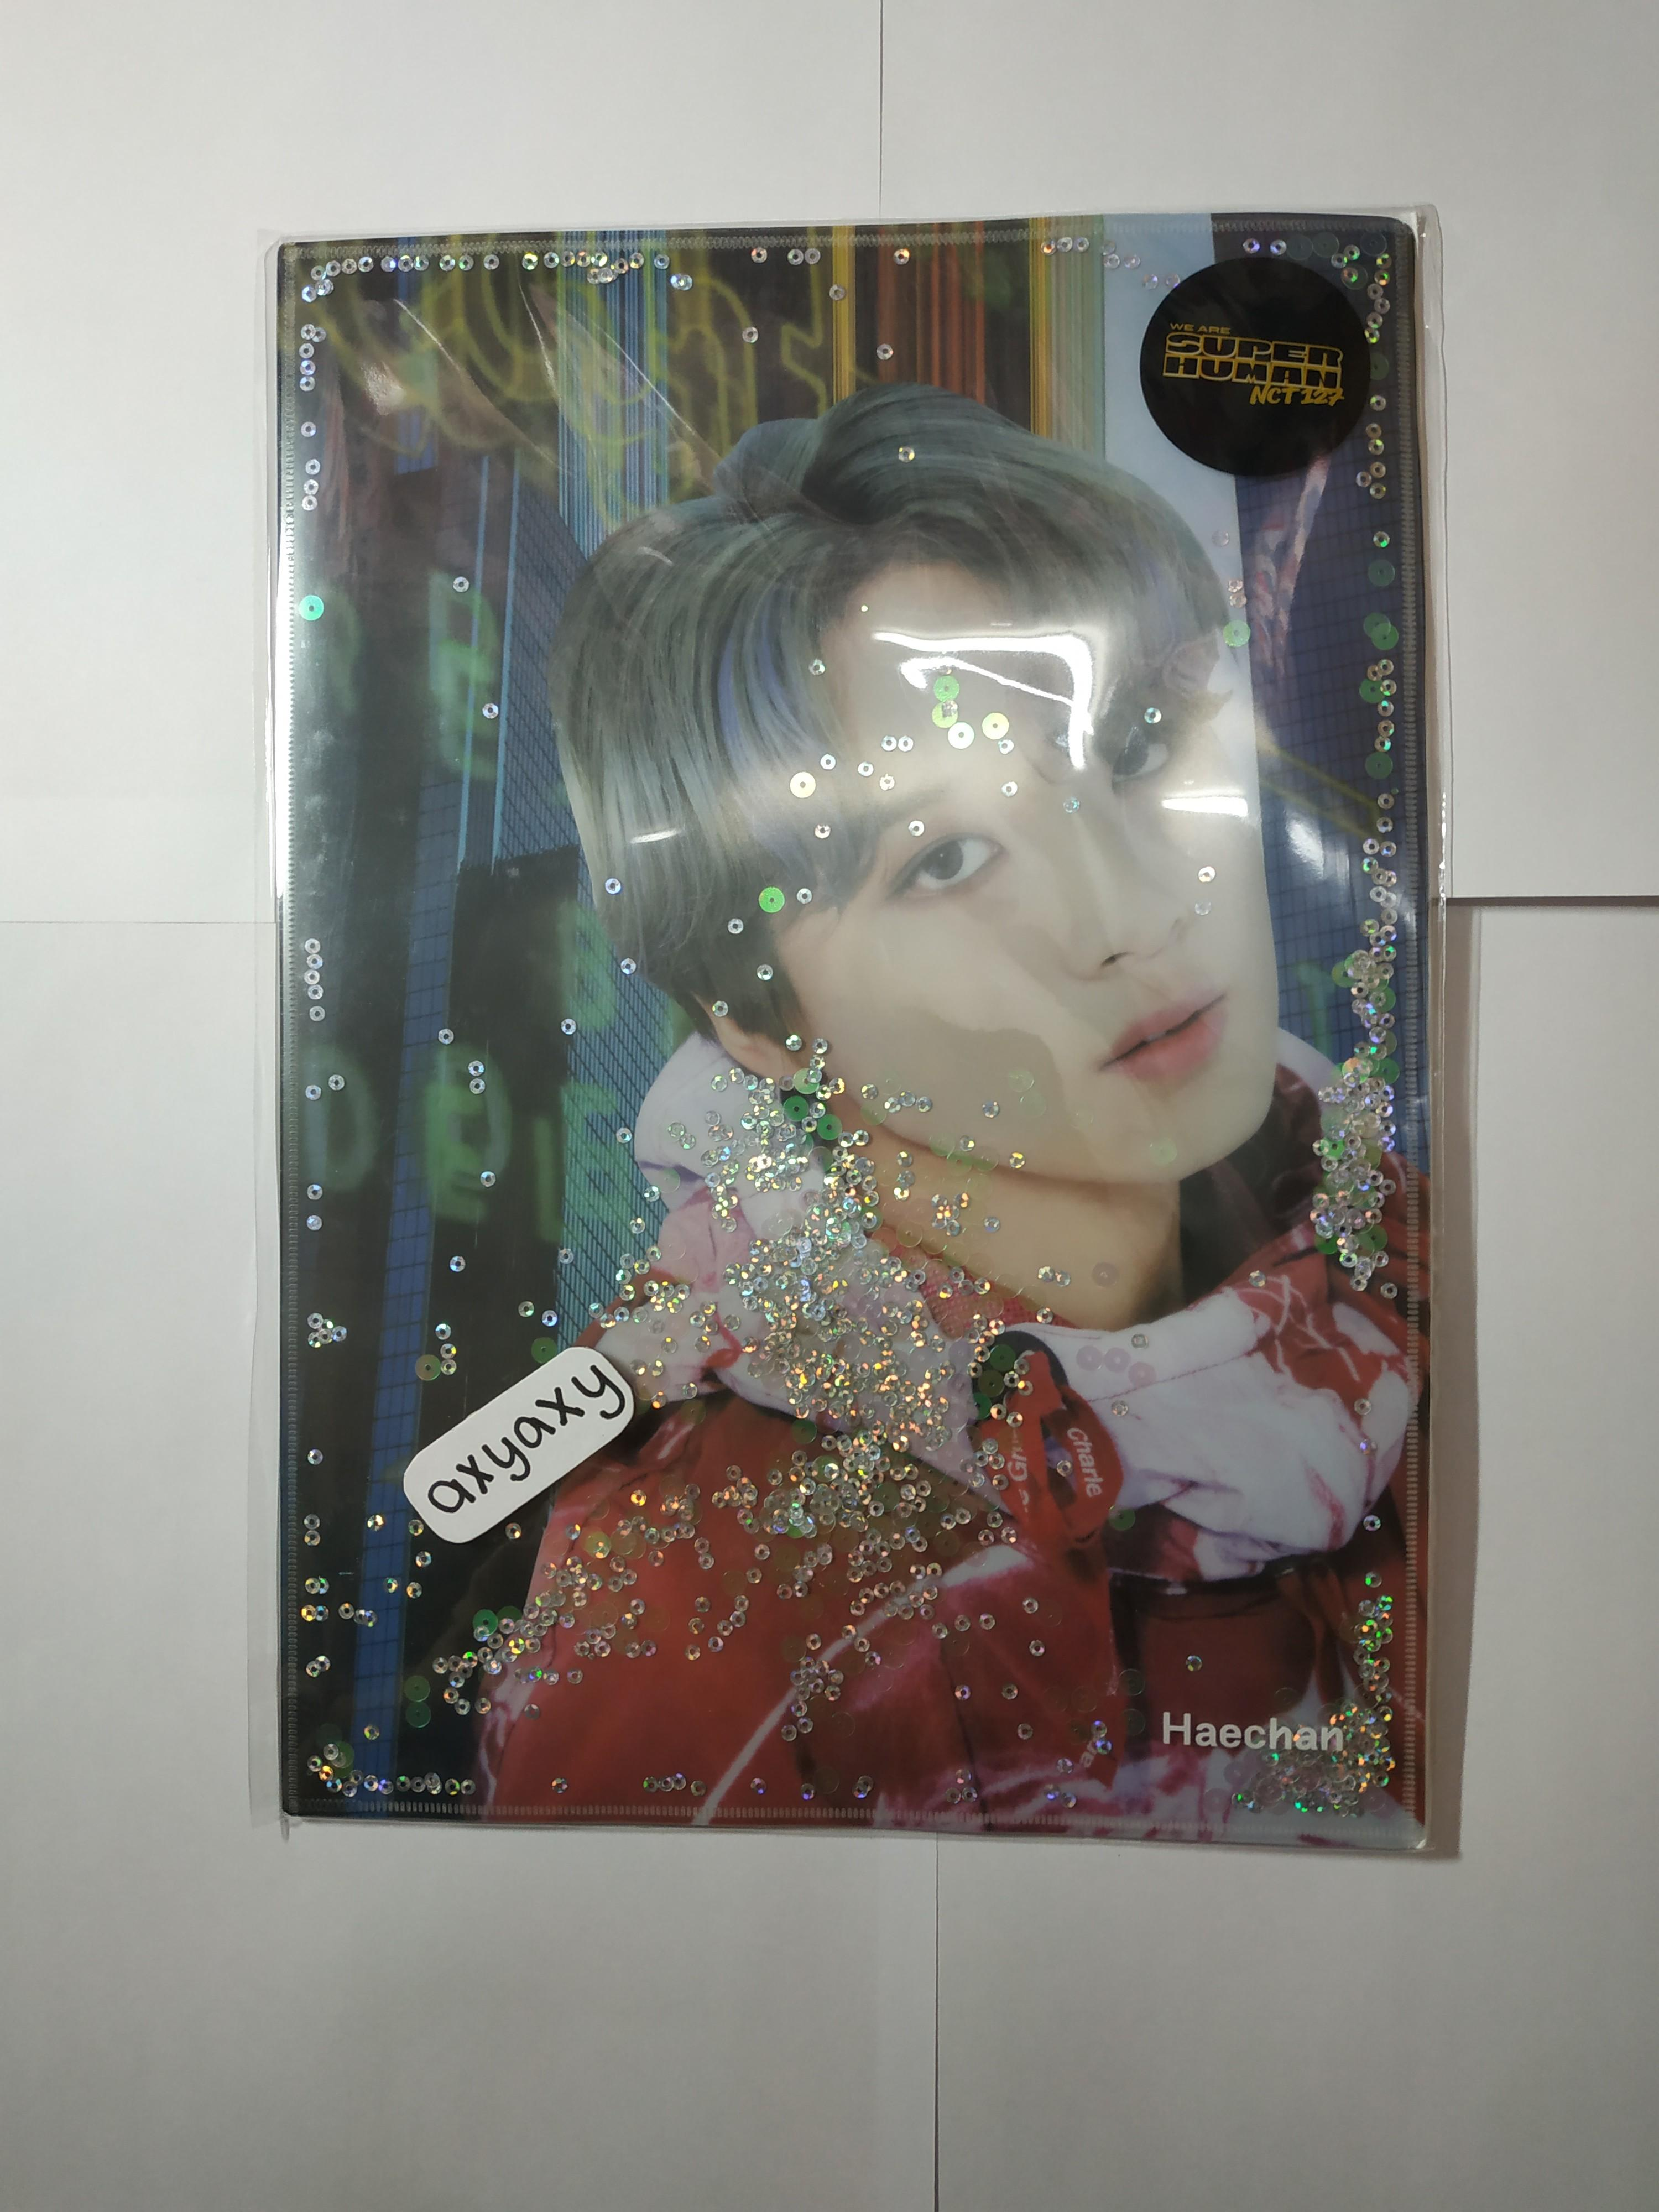 [WTS] NCT 127 We Are Superhuman Official Goods: Glitter Holders B